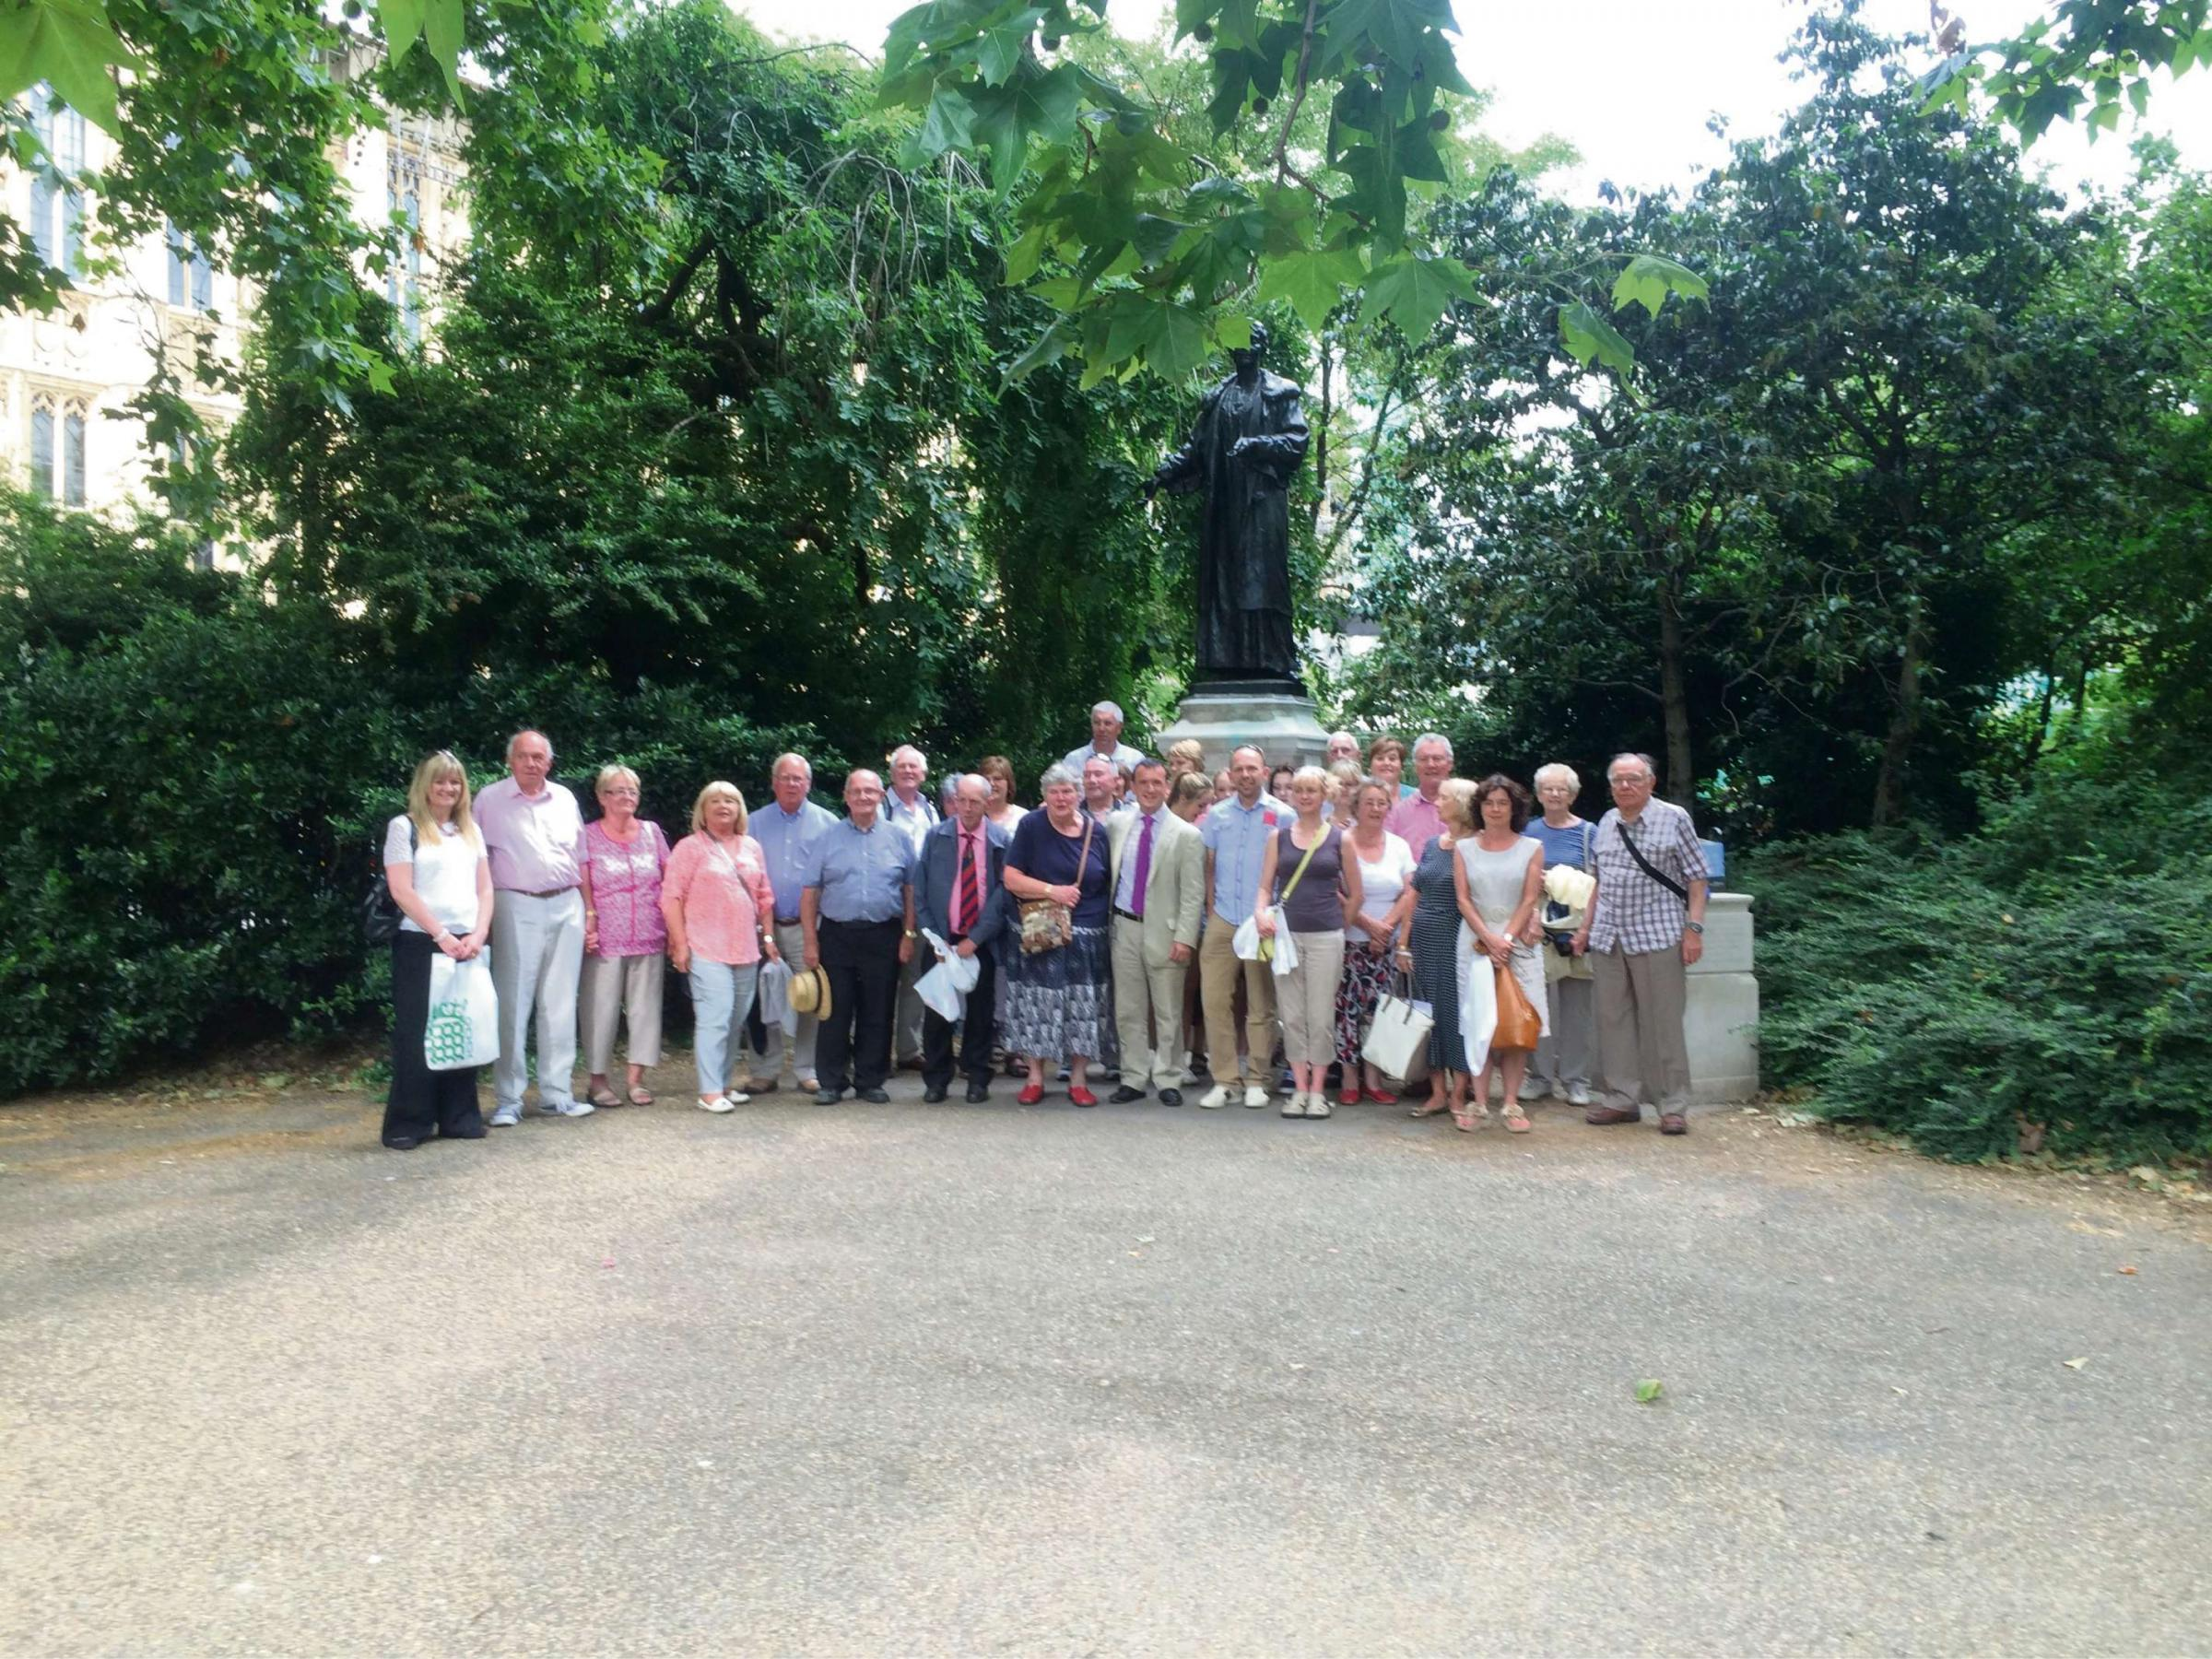 TOUR: Alun with members of the All Saints and St Baruc's Church in Victoria Gardens